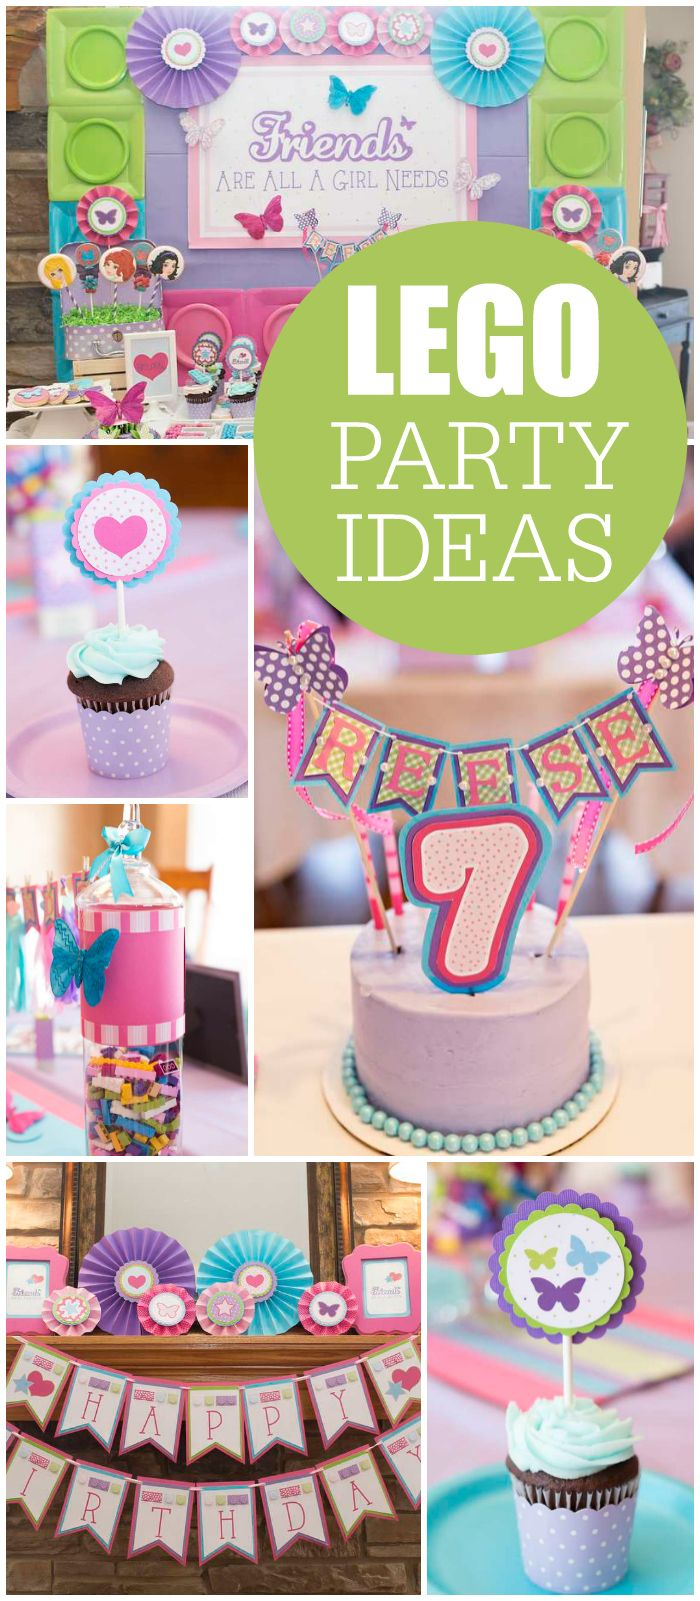 You Have To See This Fun And Colorful Lego Friends Party More Ideas At CatchMyParty